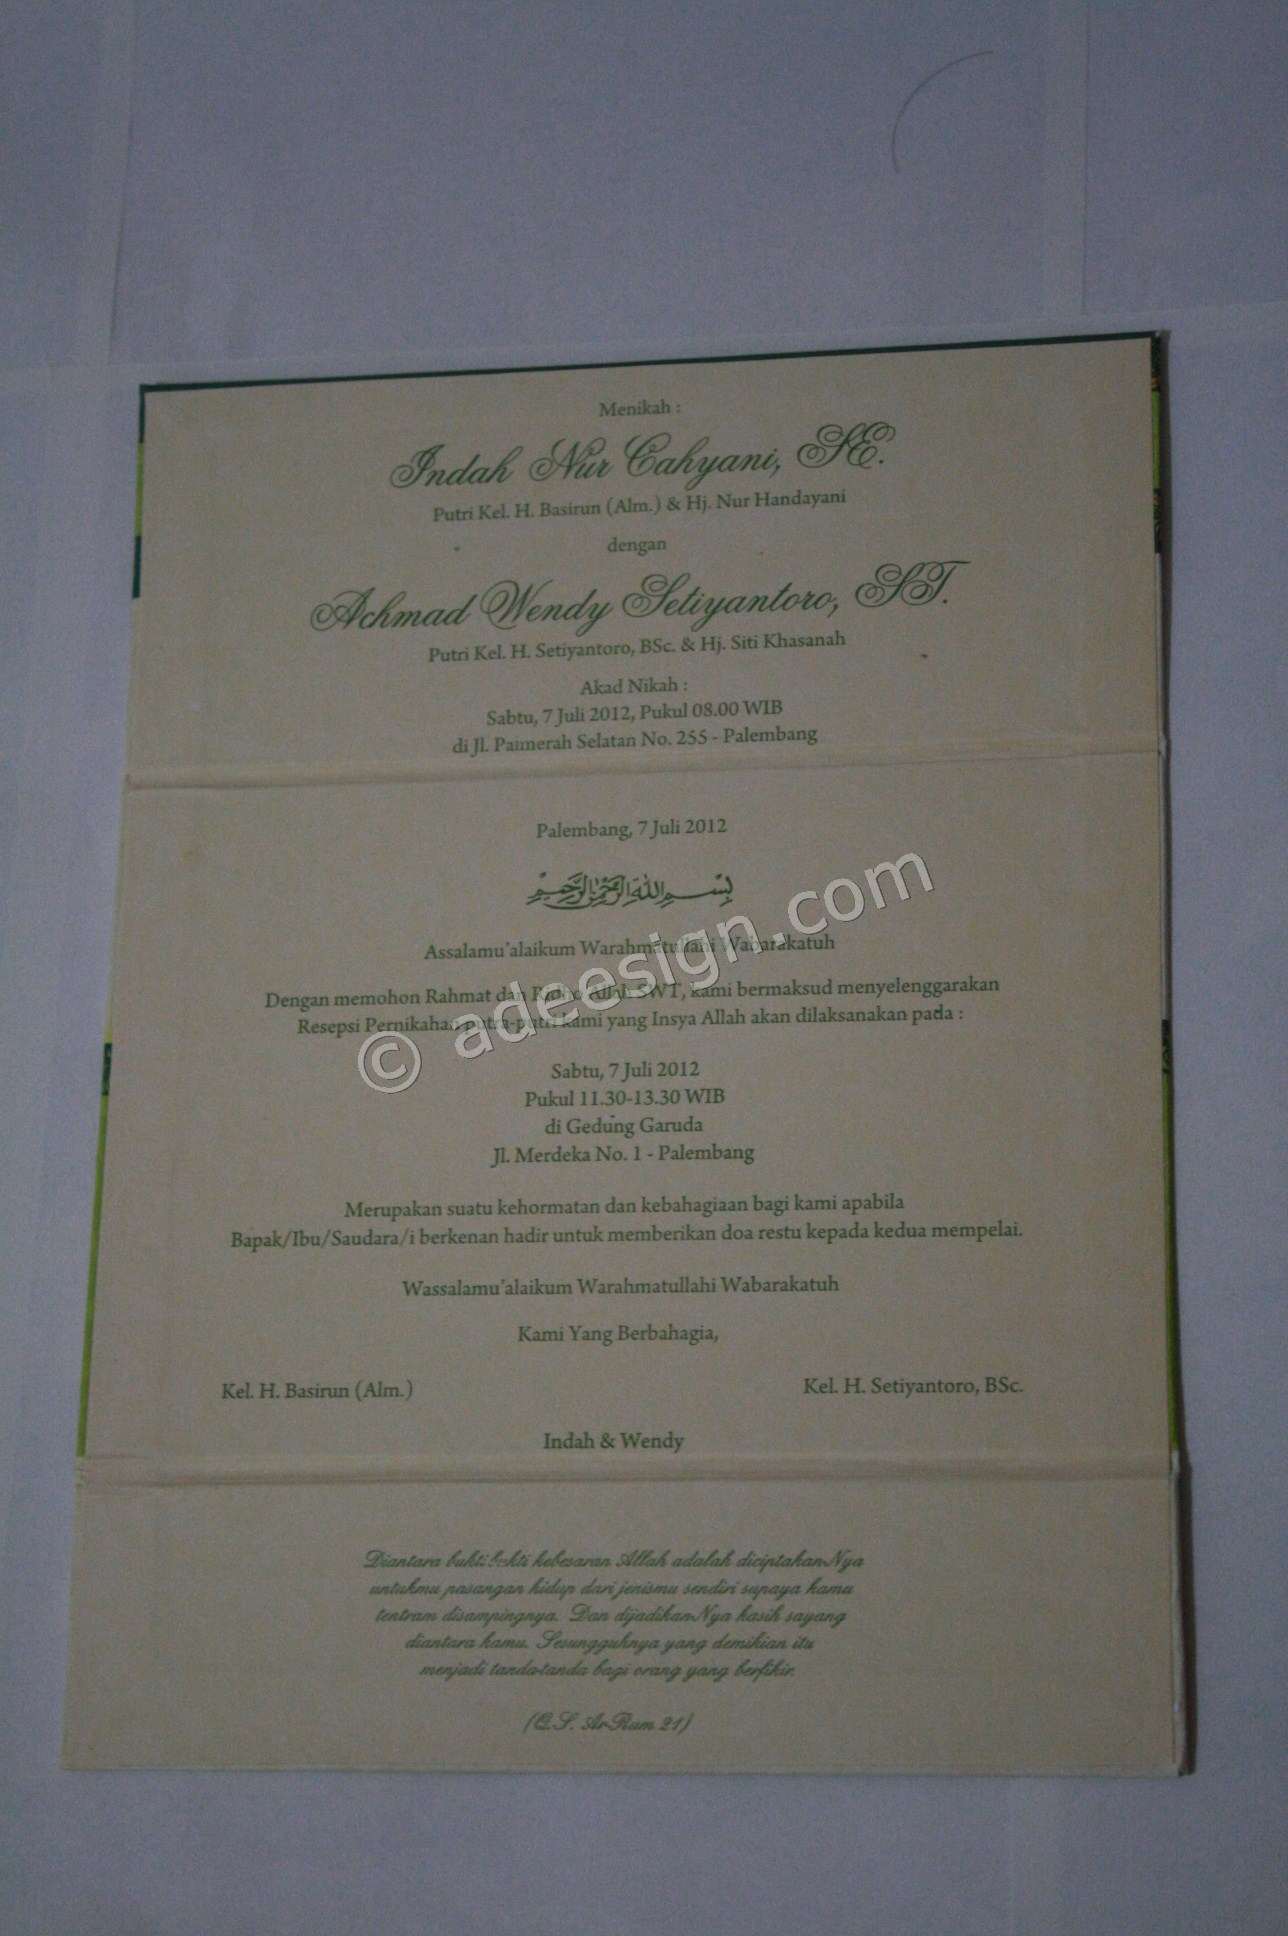 Kartu Undangan Pernikahan Hard Cover Indah dan Wendy 3 - Membuat Wedding Invitations Simple di Dr. Sutomo